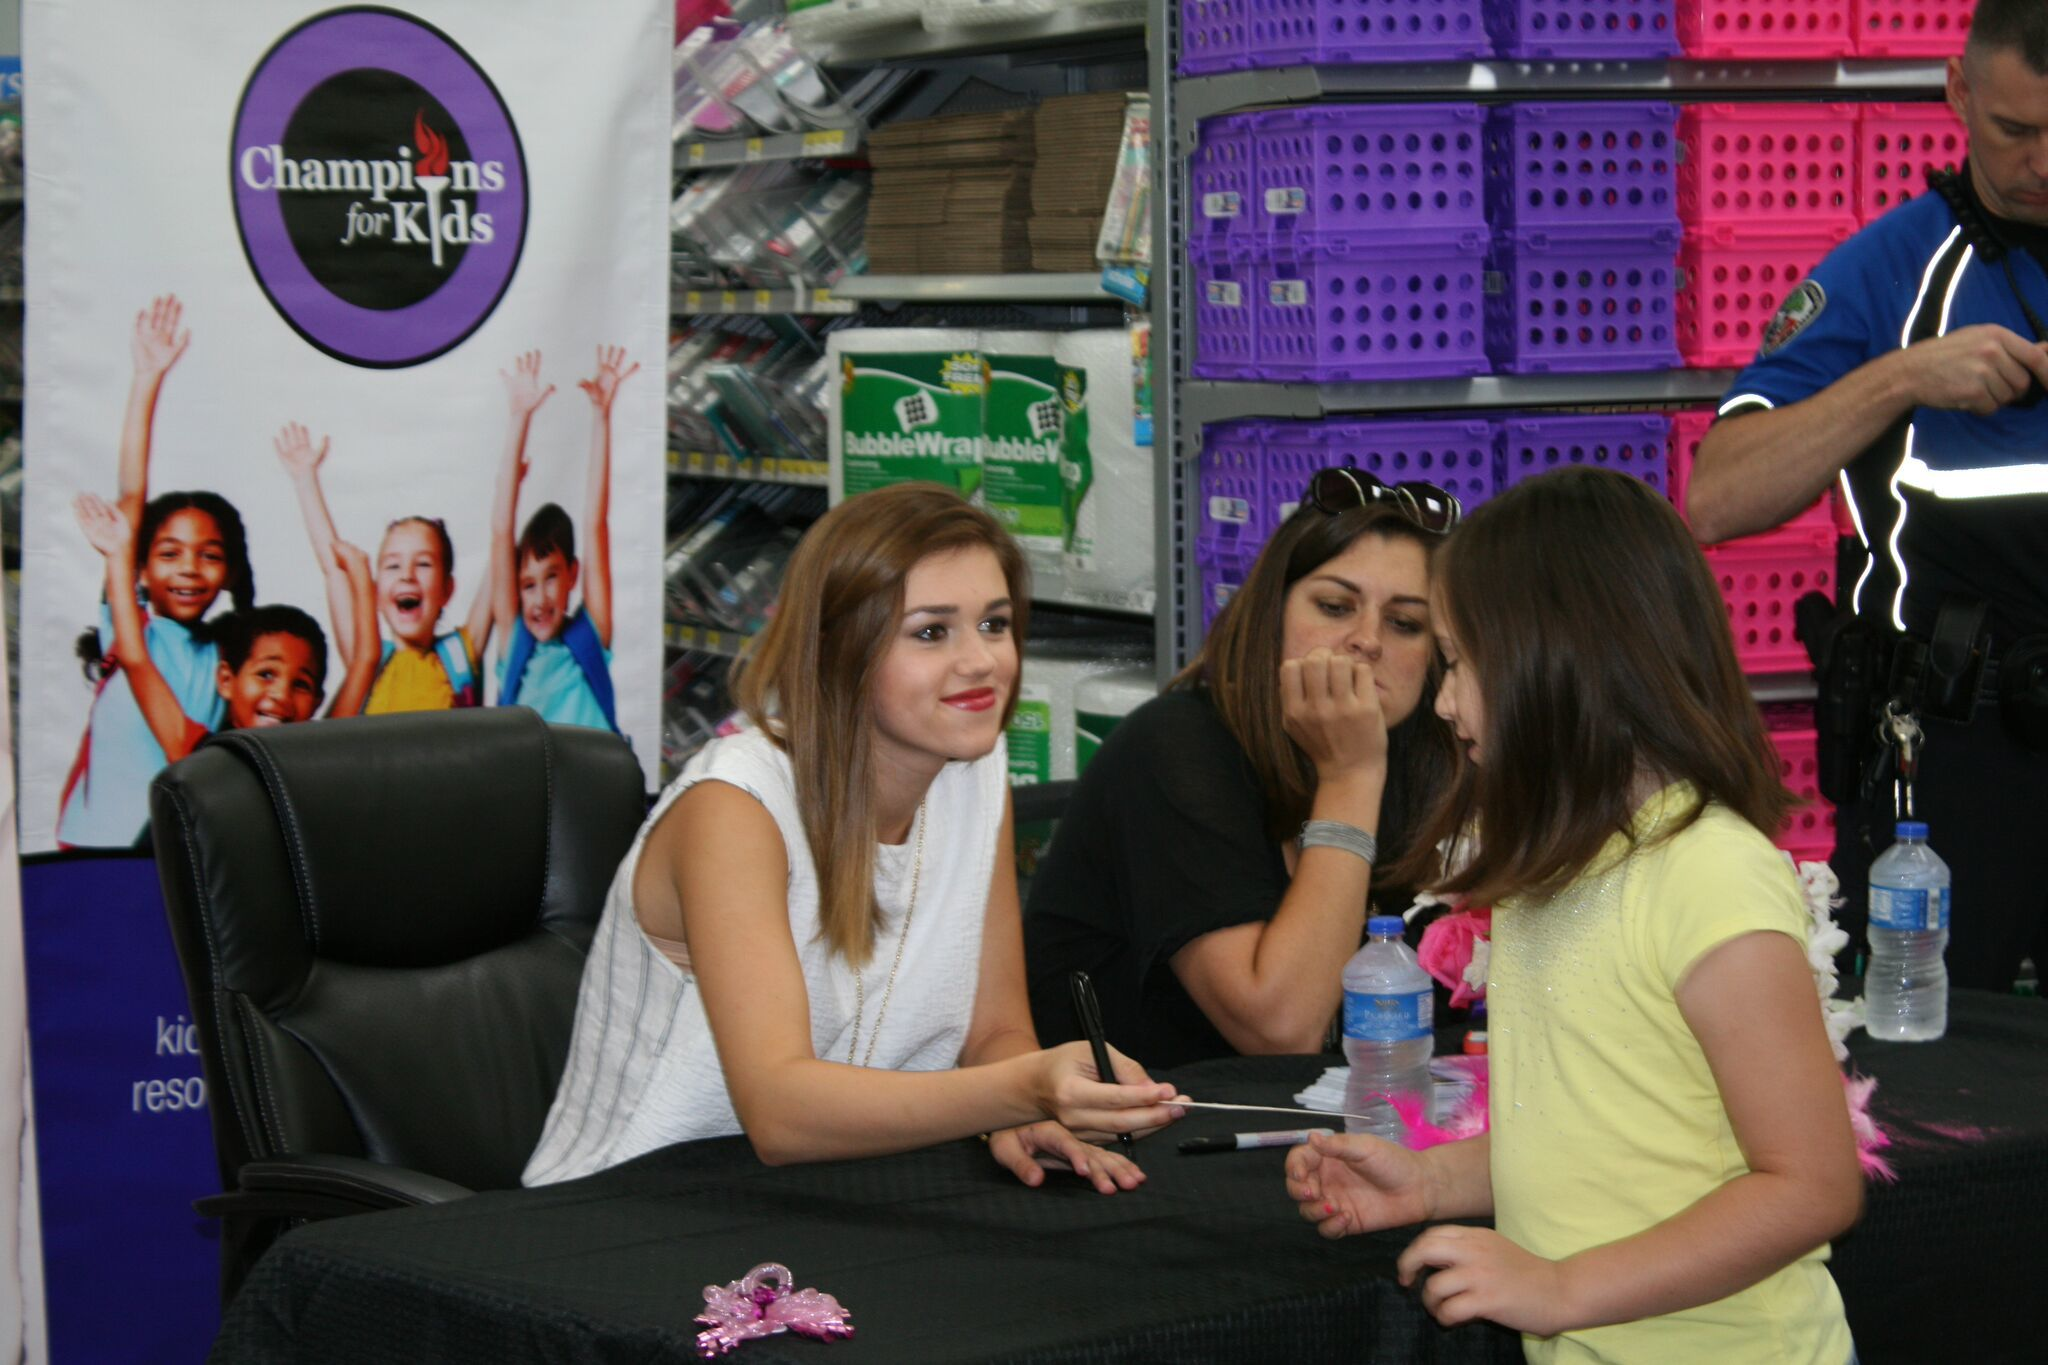 Sadie Robertson is seated in front of a Champions for Kids banner and is handing a young girl a piece of paper.